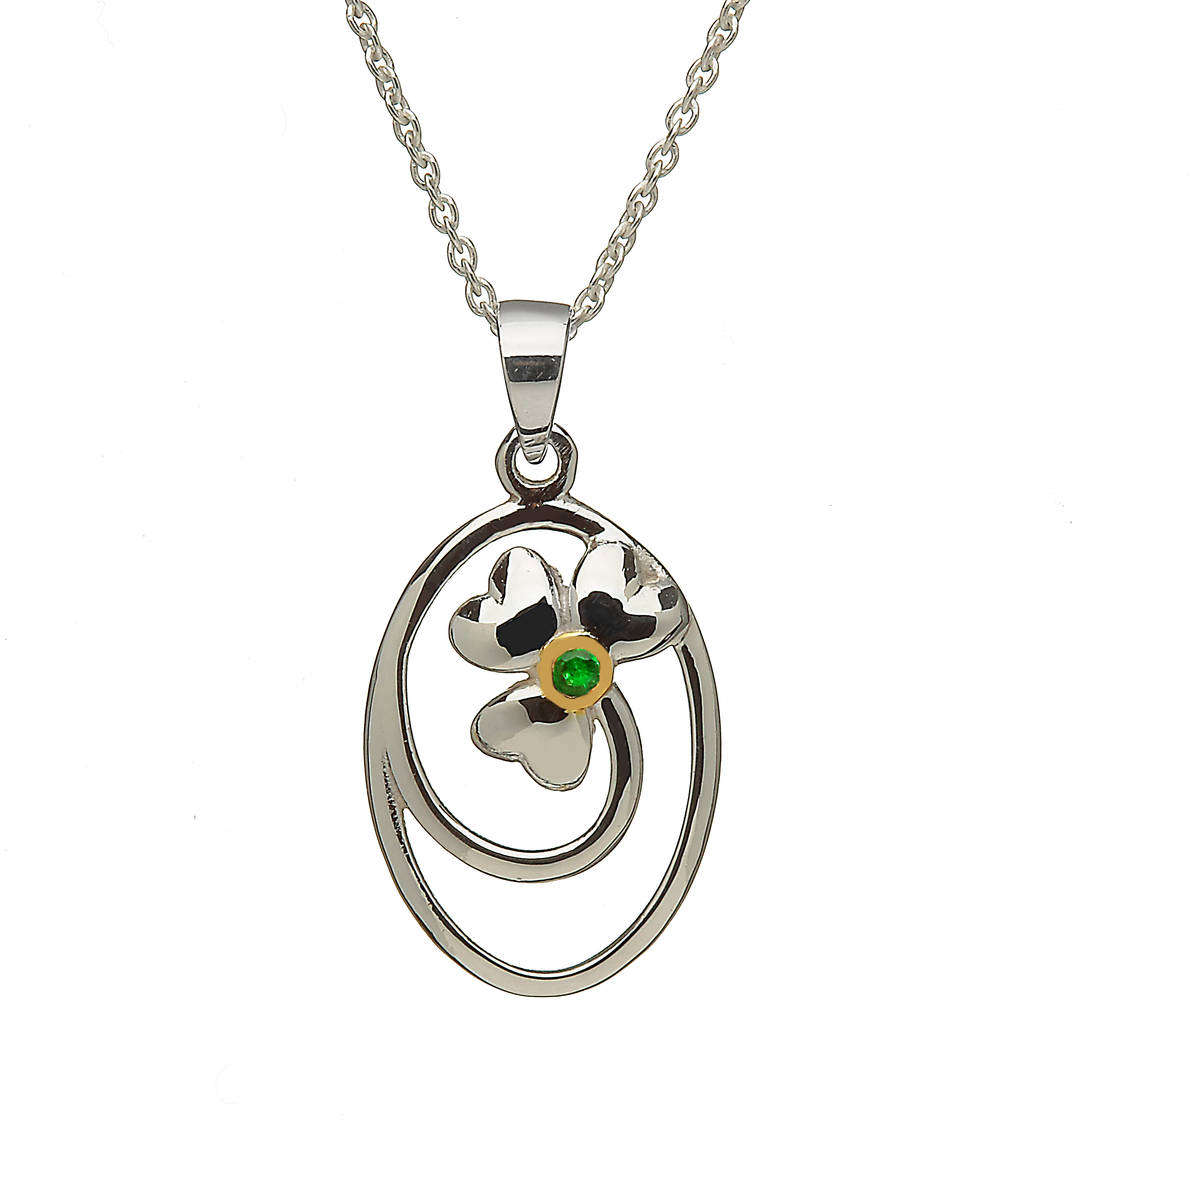 Silver Oval Pendant With Emerald Shamrock